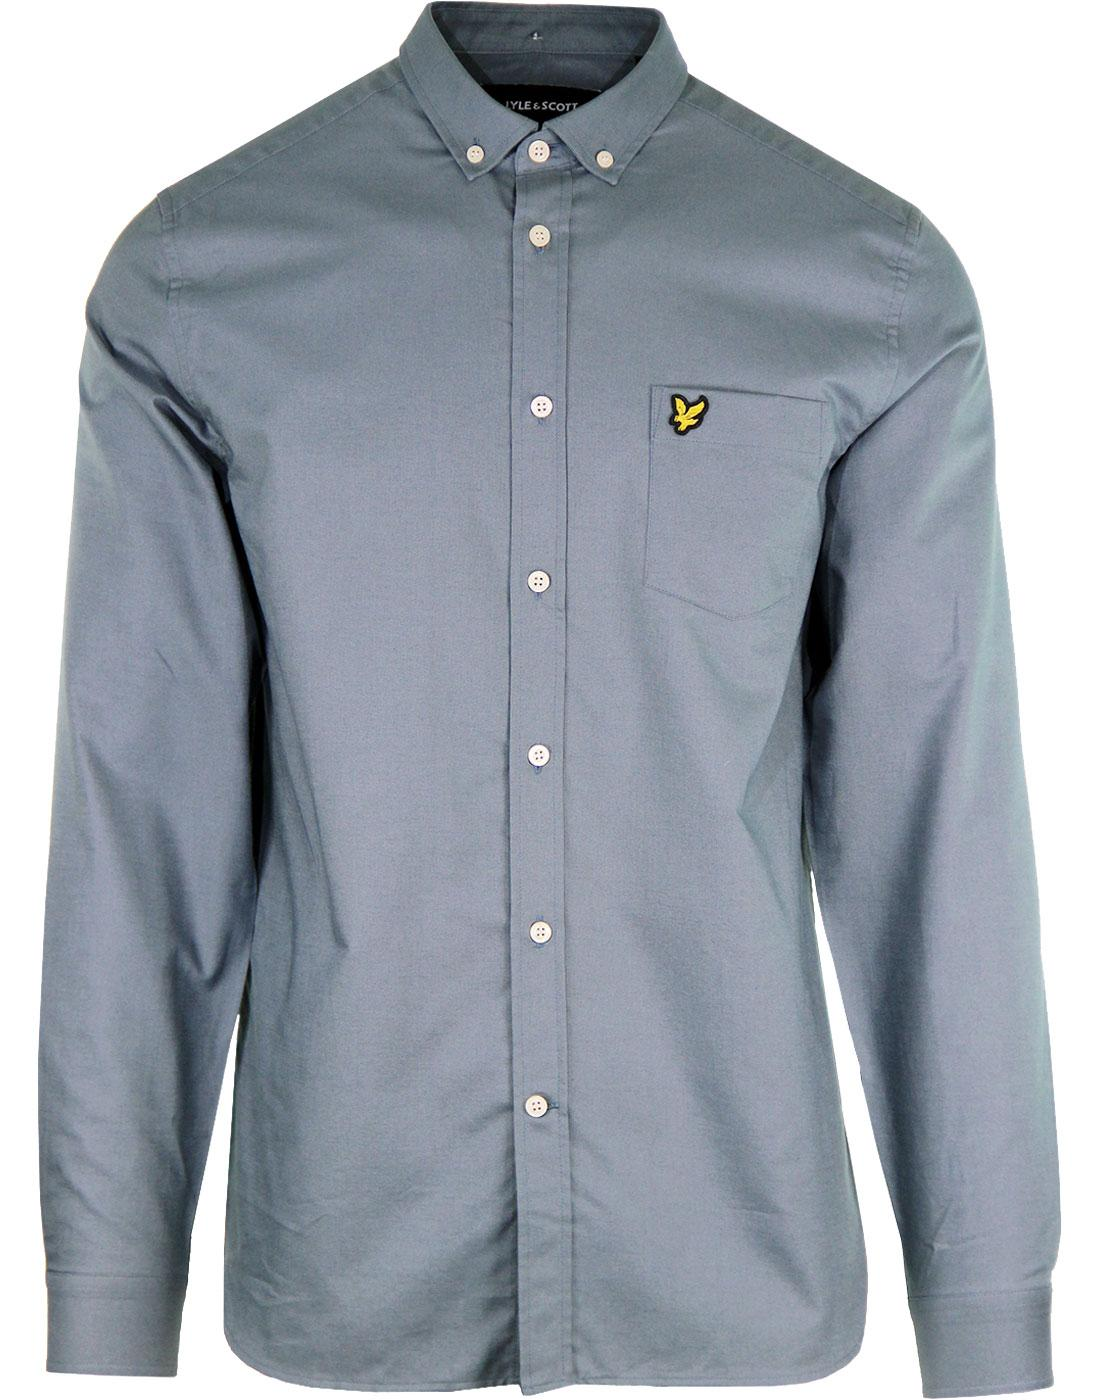 LYLE & SCOTT 60's Mod Button Down Oxford Shirt BL